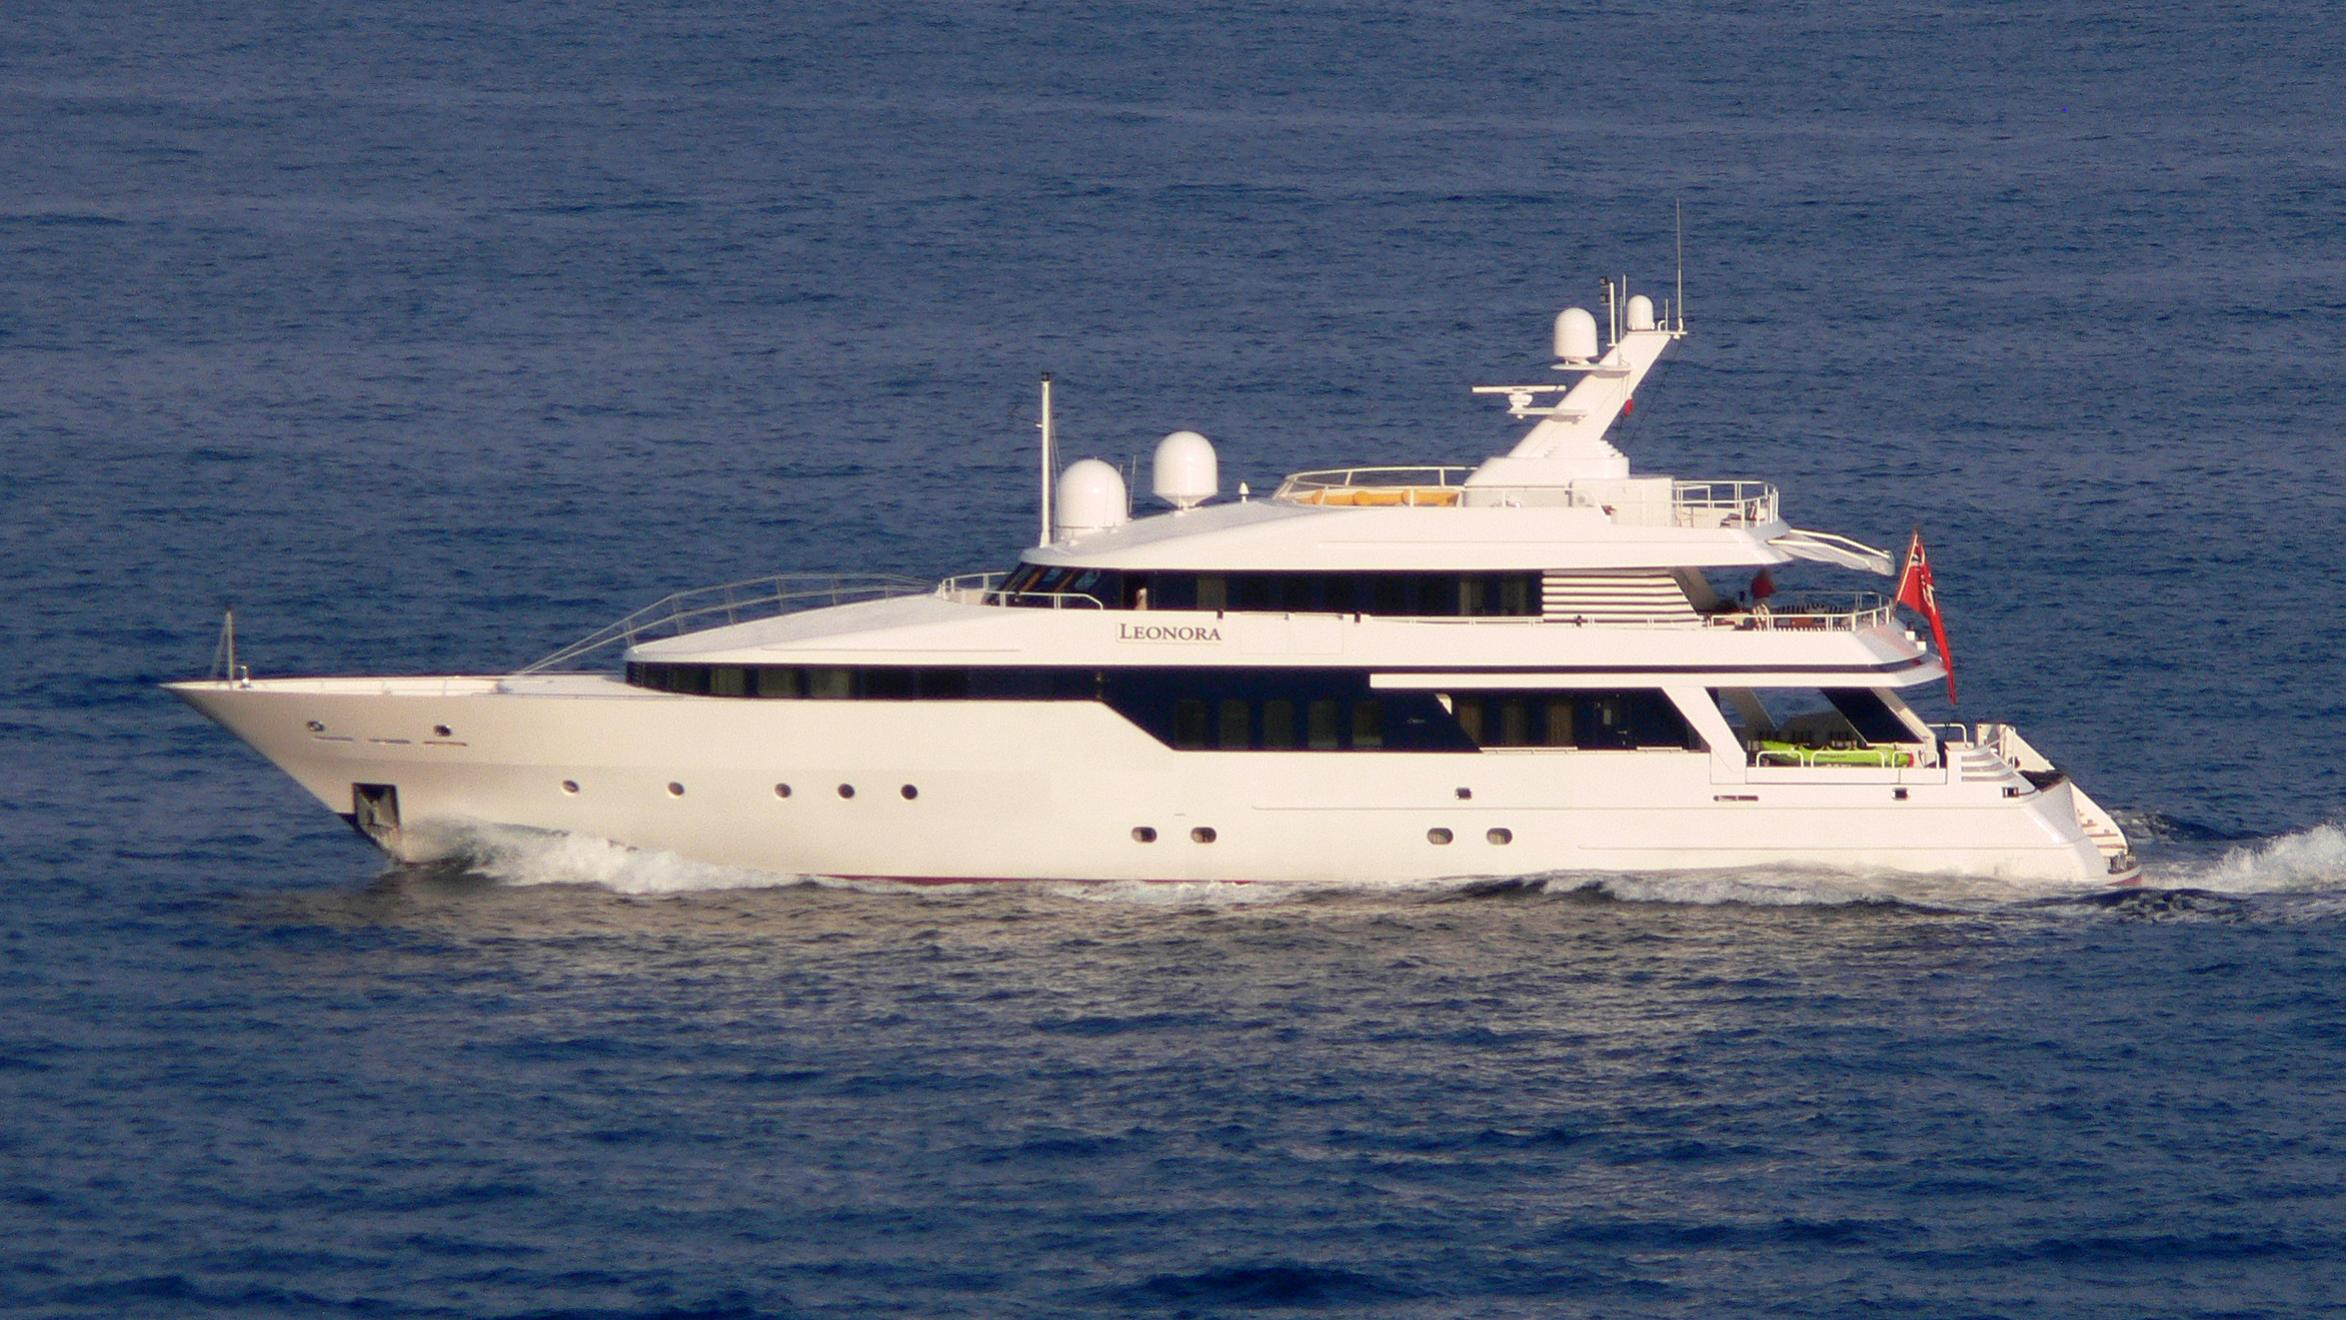 be mine motoryacht lurssen 1991 40m profile before refit